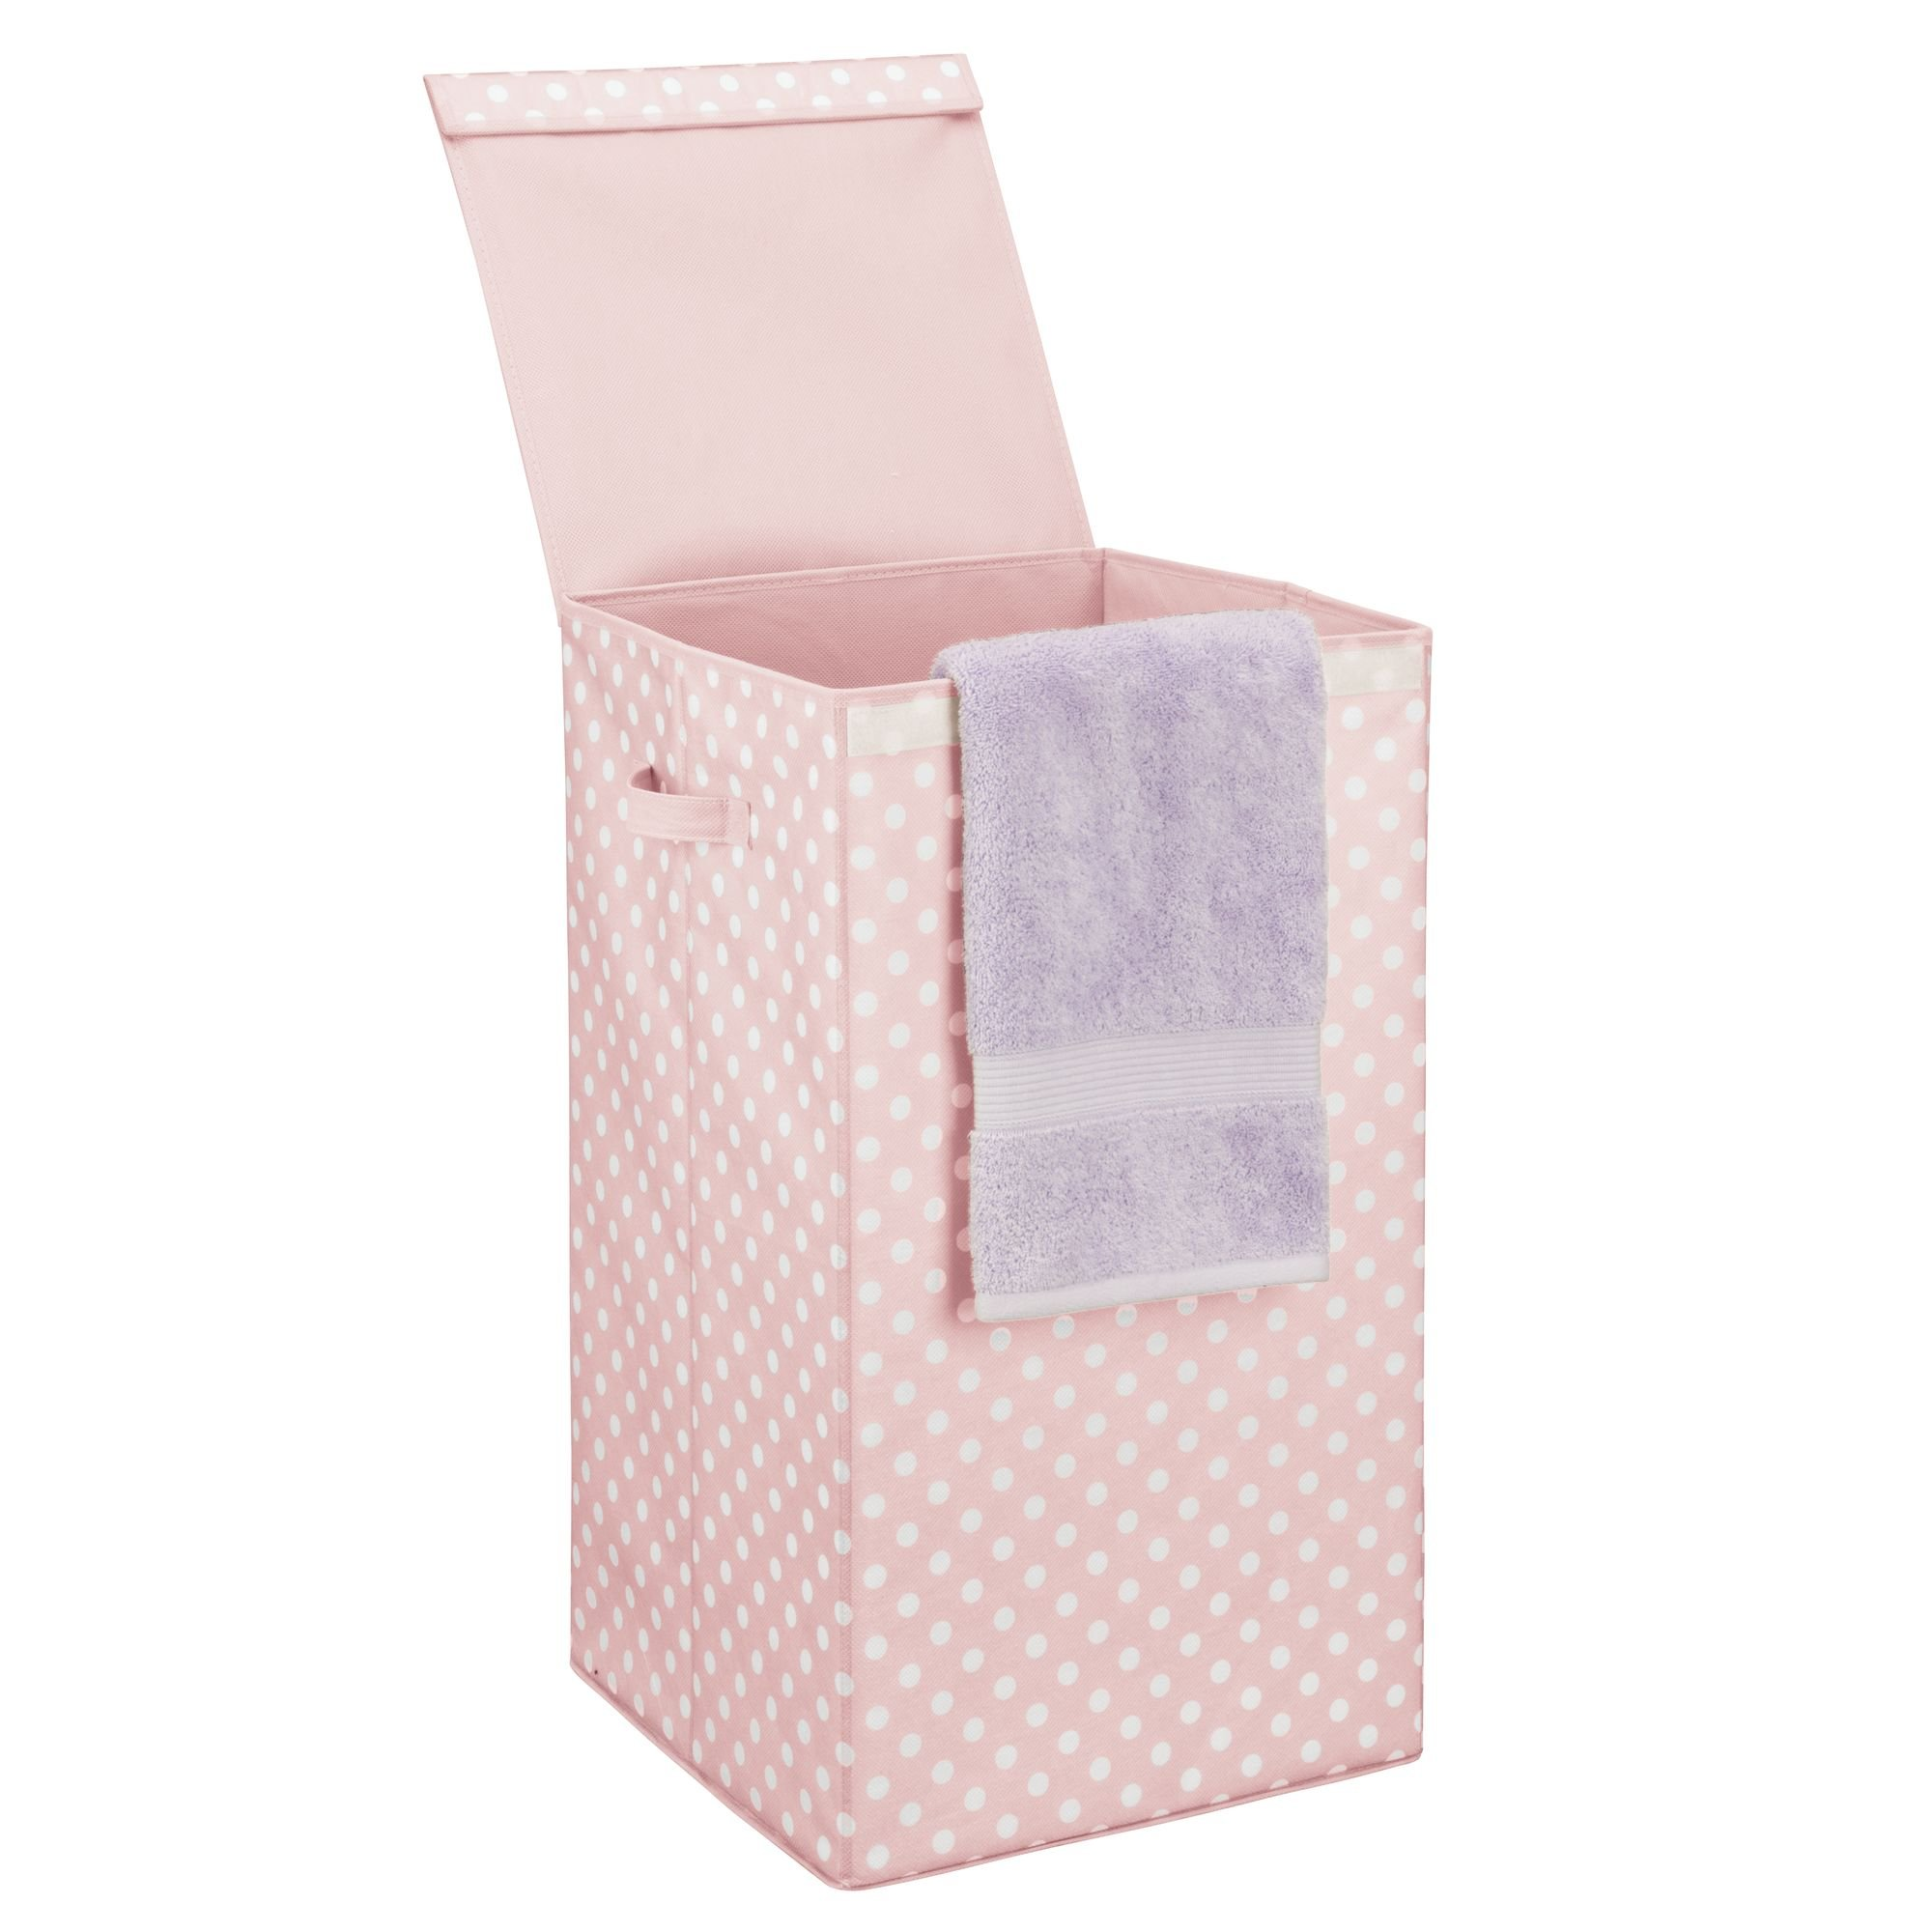 mDesign Large Laundry Hamper Basket with Hinged Lid and Attached Handles - Portable and Foldable for Compact Storage - Single Hamper Design, Fun Polka Dot Pattern - Pink with White Dots